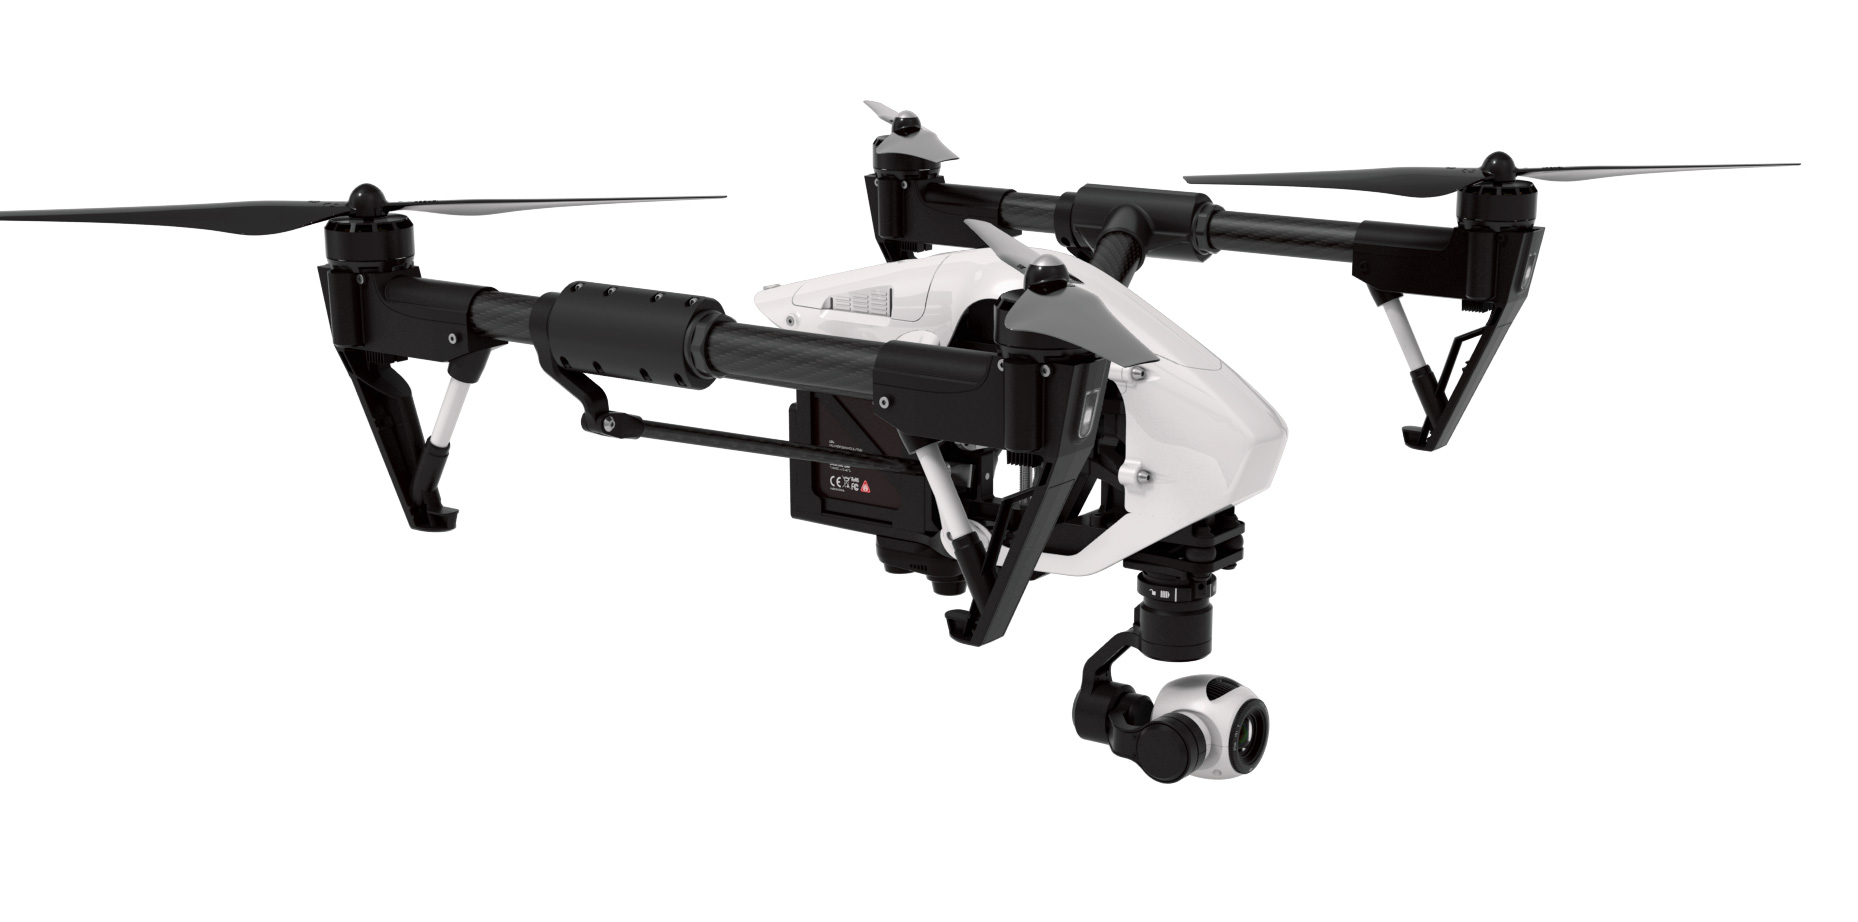 drones for sale cheap with Dji Inspire 1 Hollywood Calibre Drone 3000 on Mindblowing Next Gen Balancing Robotic Toy Wowwee Mip Robot together with Mini Drone additionally 7 Tips For Flying A Small Drone Indoors as well Dji Inspire 1 Hollywood Calibre Drone 3000 moreover Phantom 3 Drone.